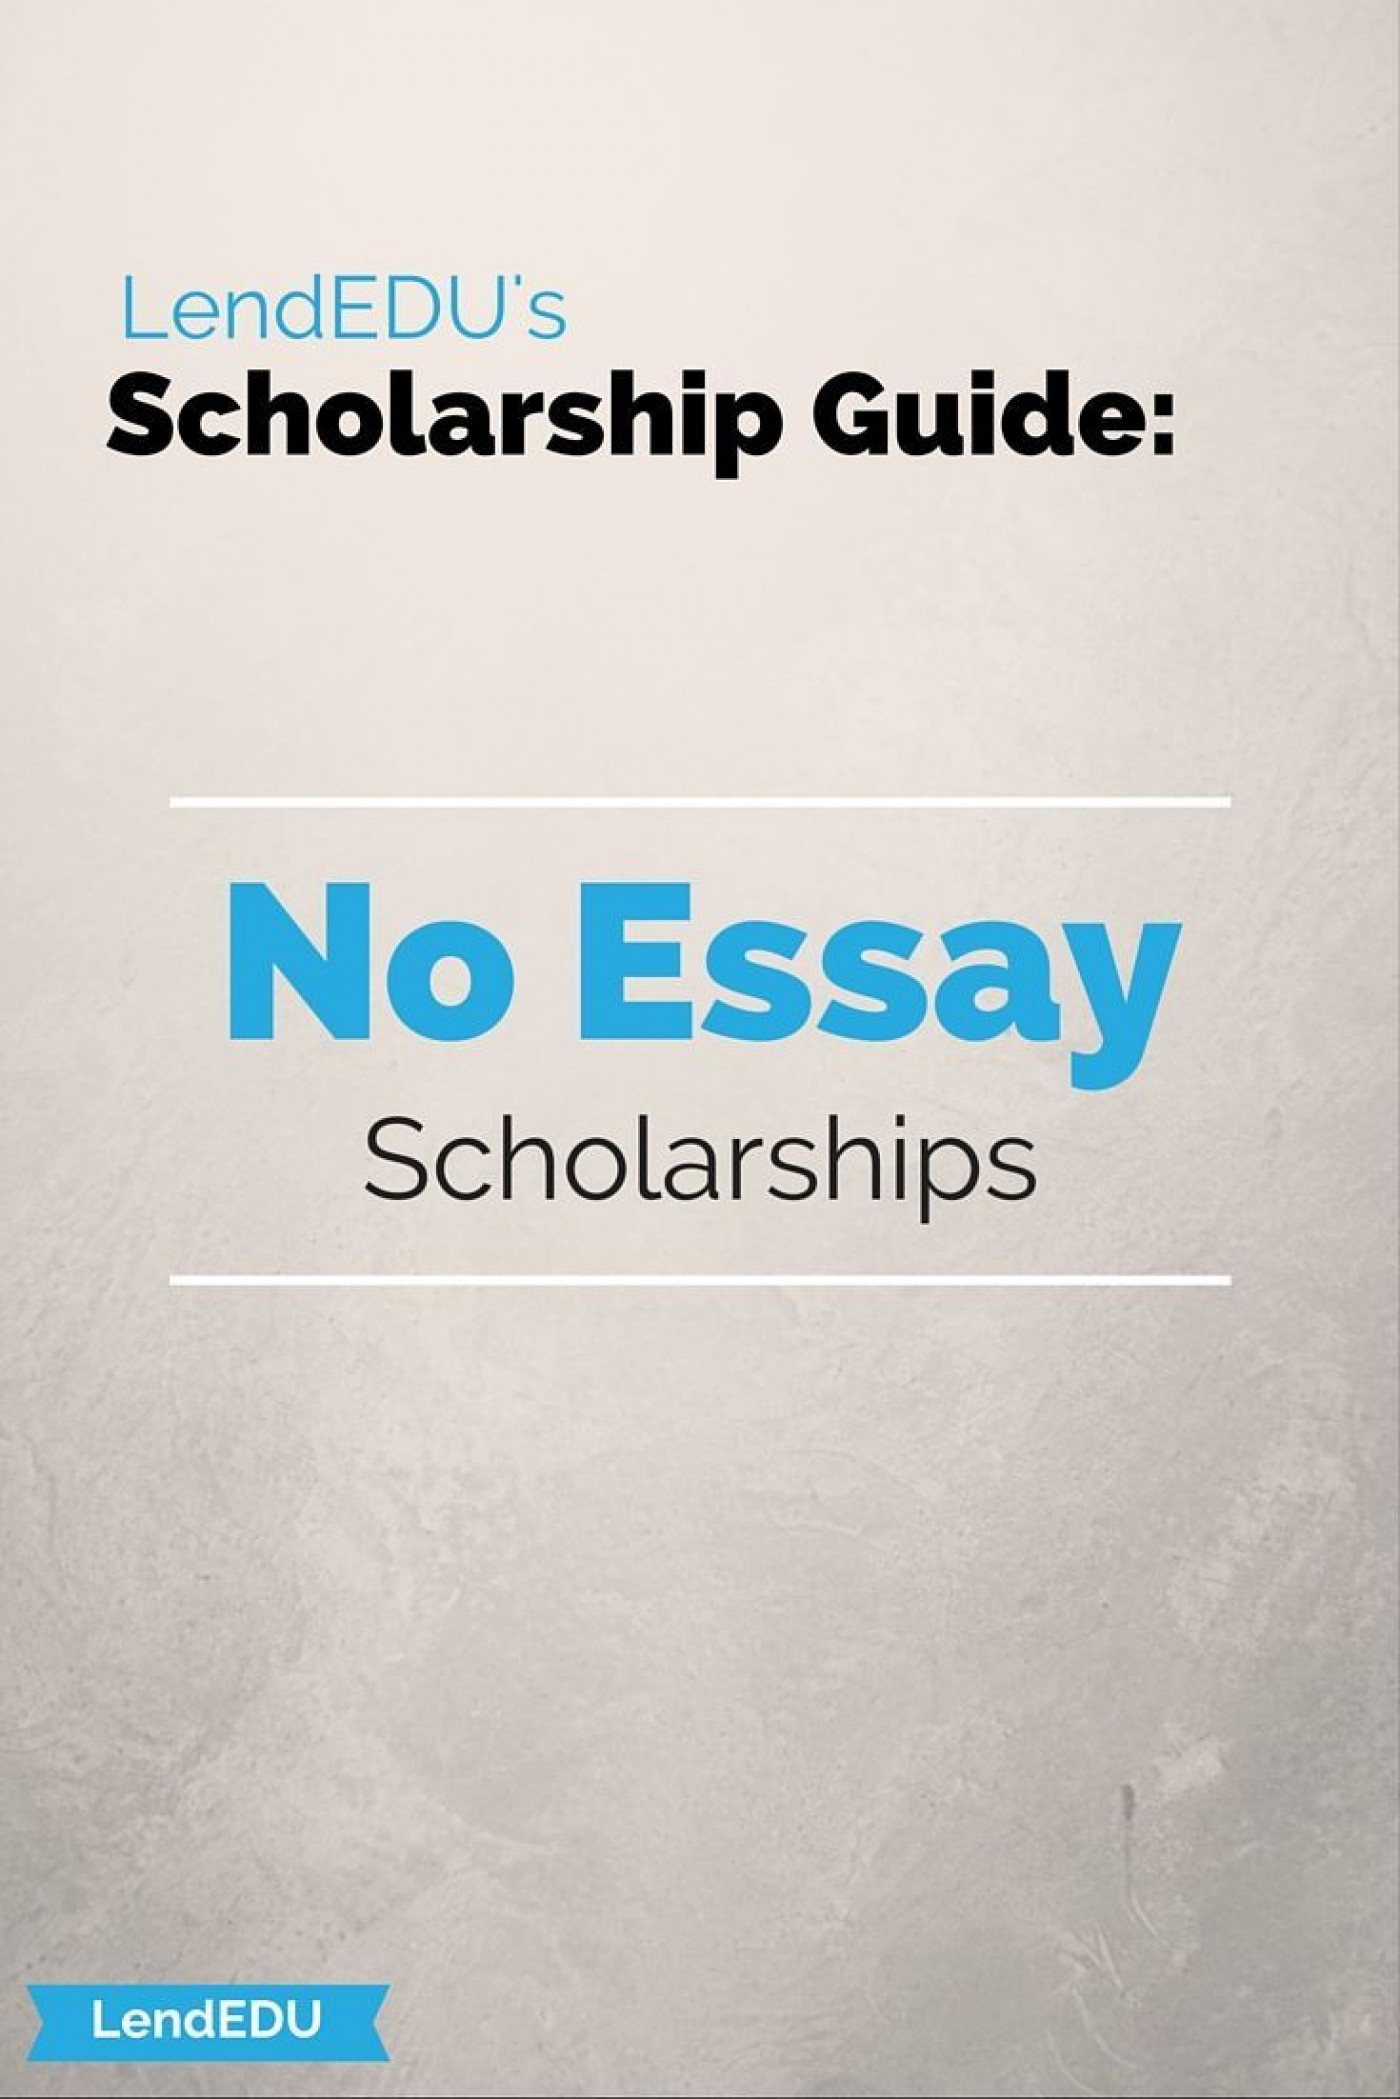 018 No Essay Scholarships Example Exceptional December 2018 For Undergraduates 1400